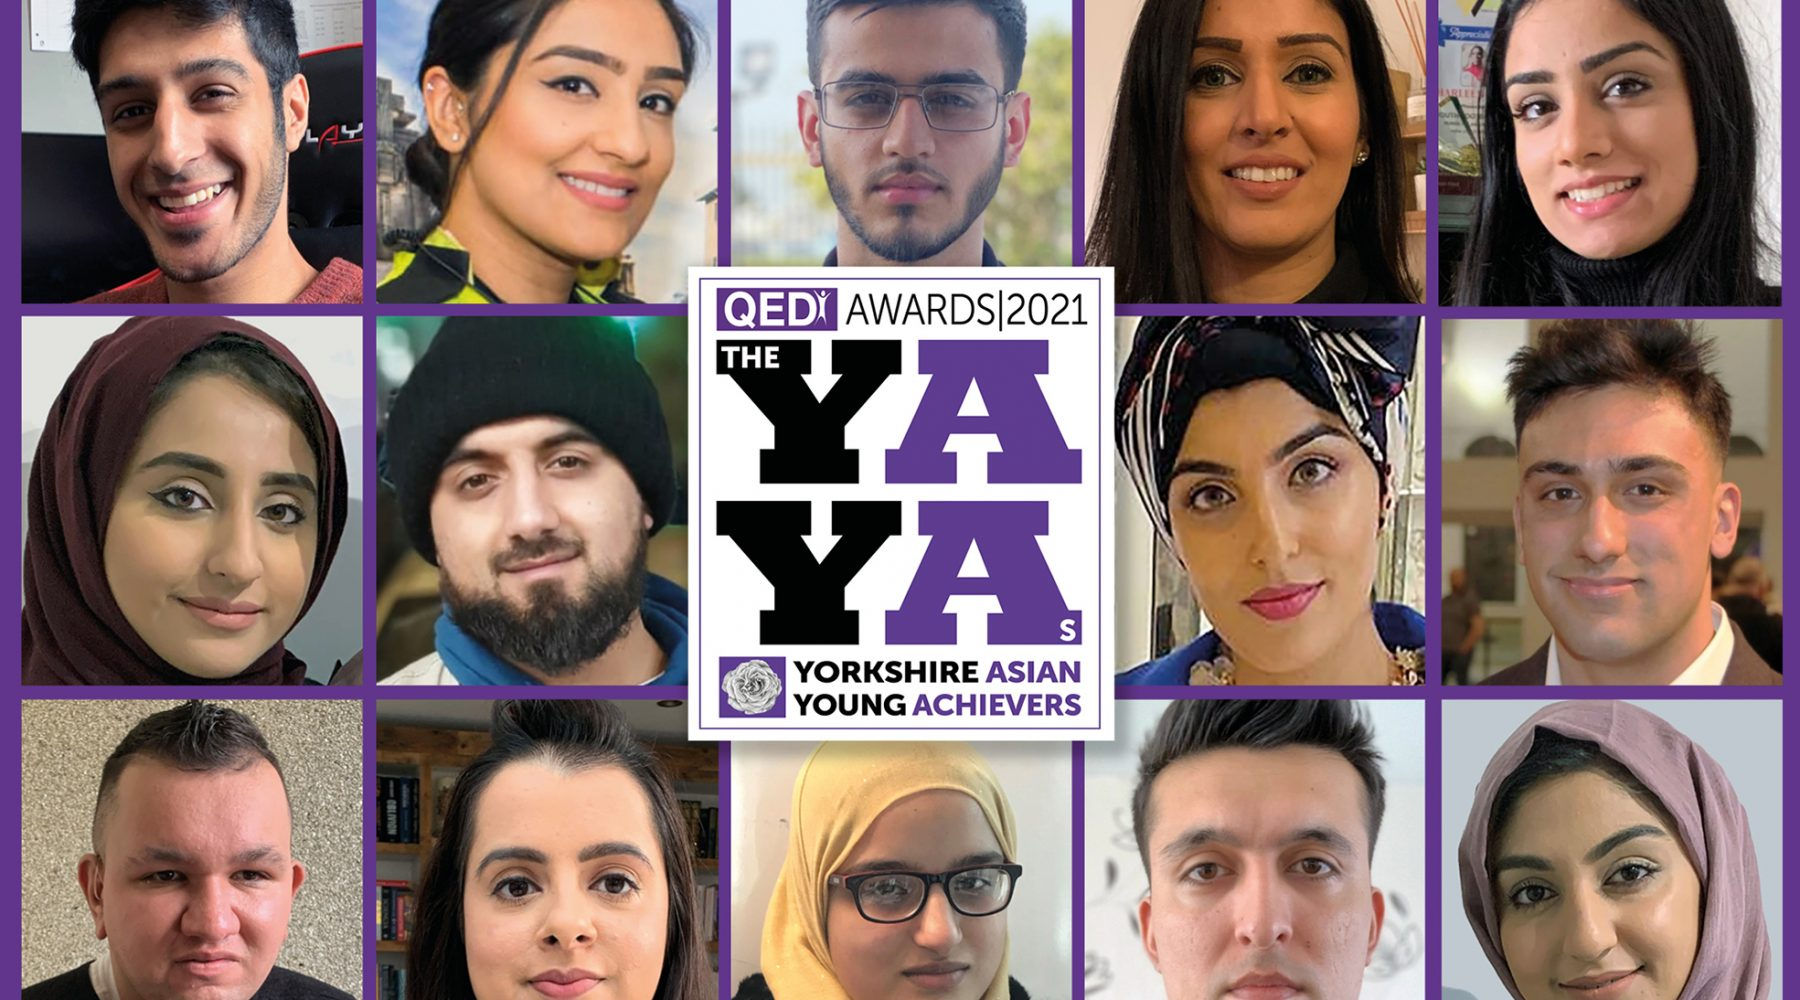 Inspirational awards scheme for Yorkshire's young Asians launches…